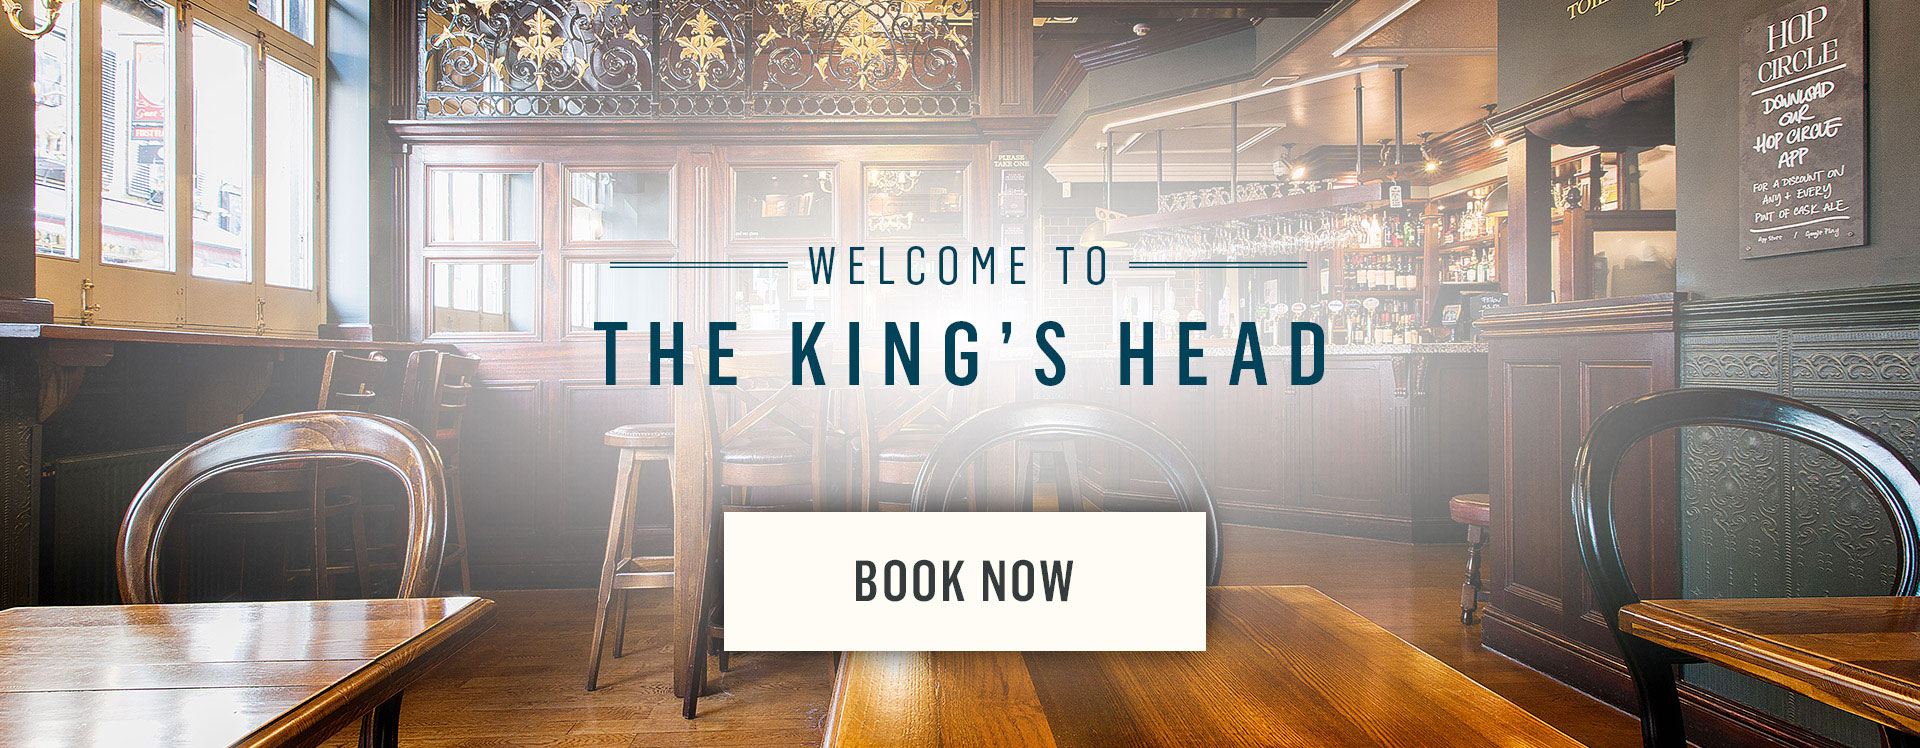 Welcome to The King's Head - Book Now